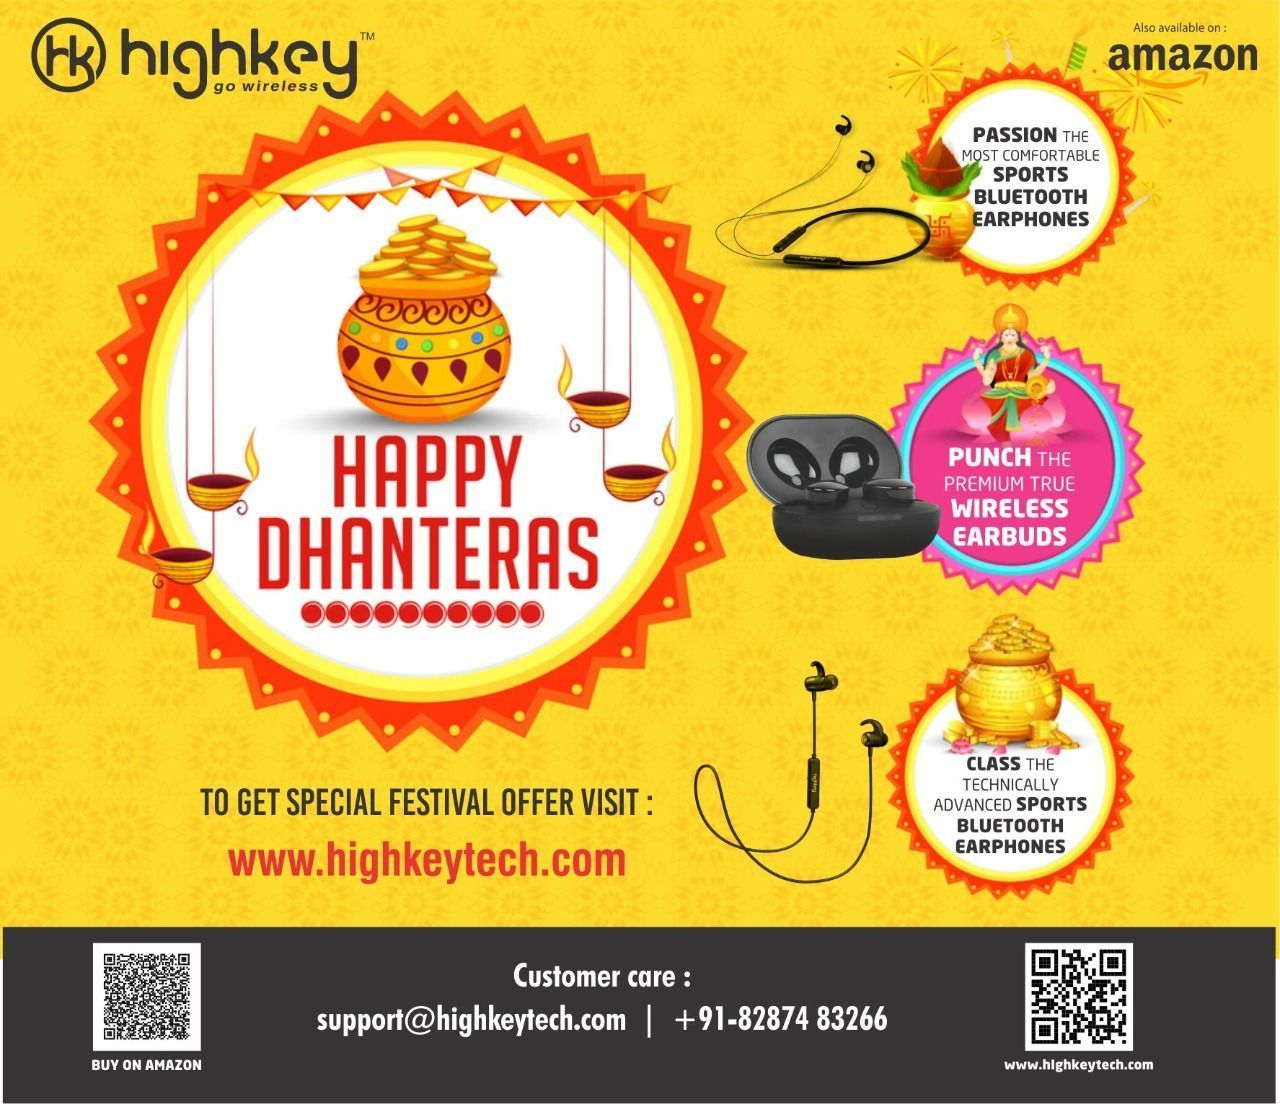 Happy Dhanteras 2019! On this festive day of Dhanteras, May divine blessings of Goddess Laxmi best